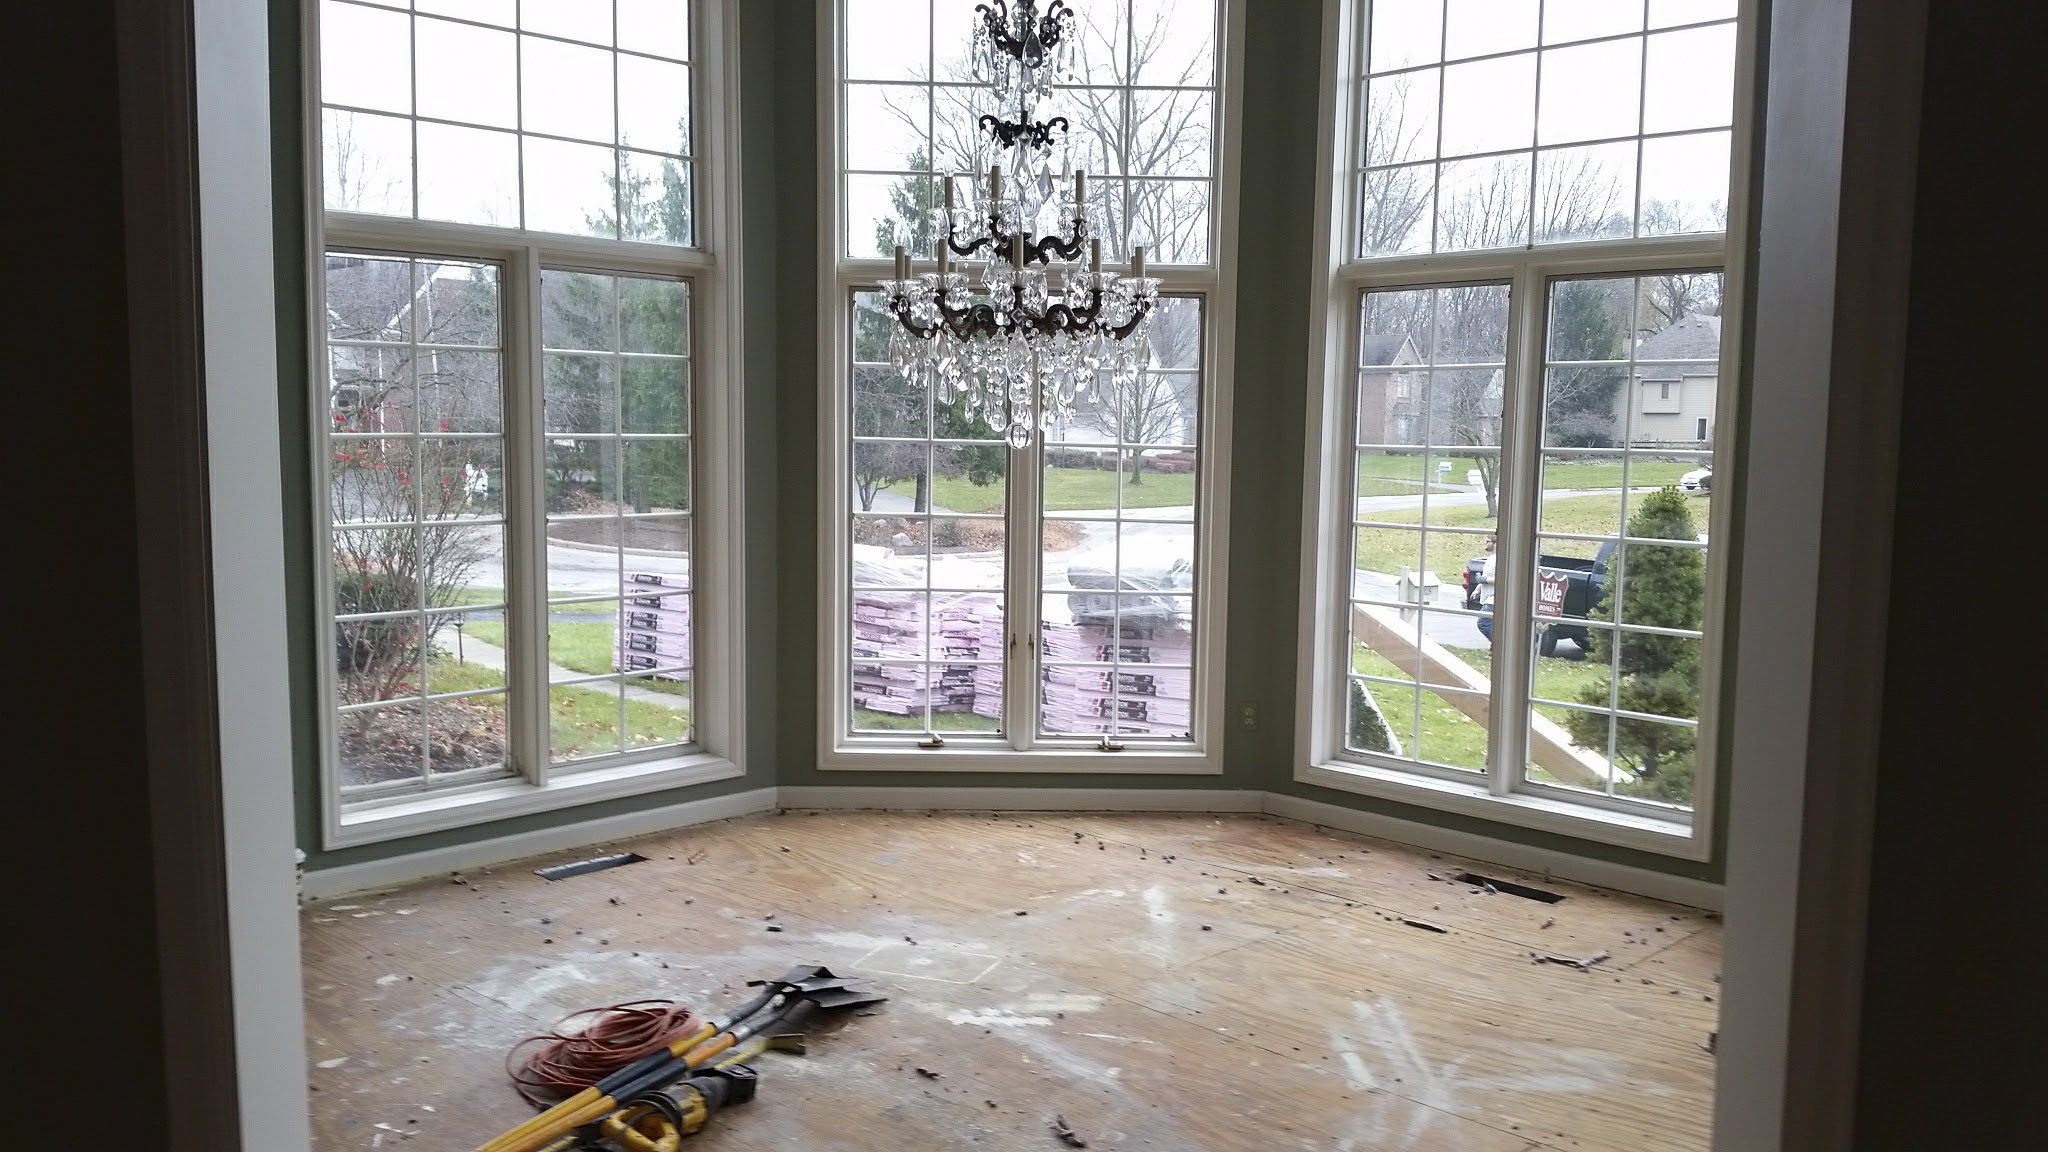 The renovated dining room will receive new windows and flooring as well as an updated bar.